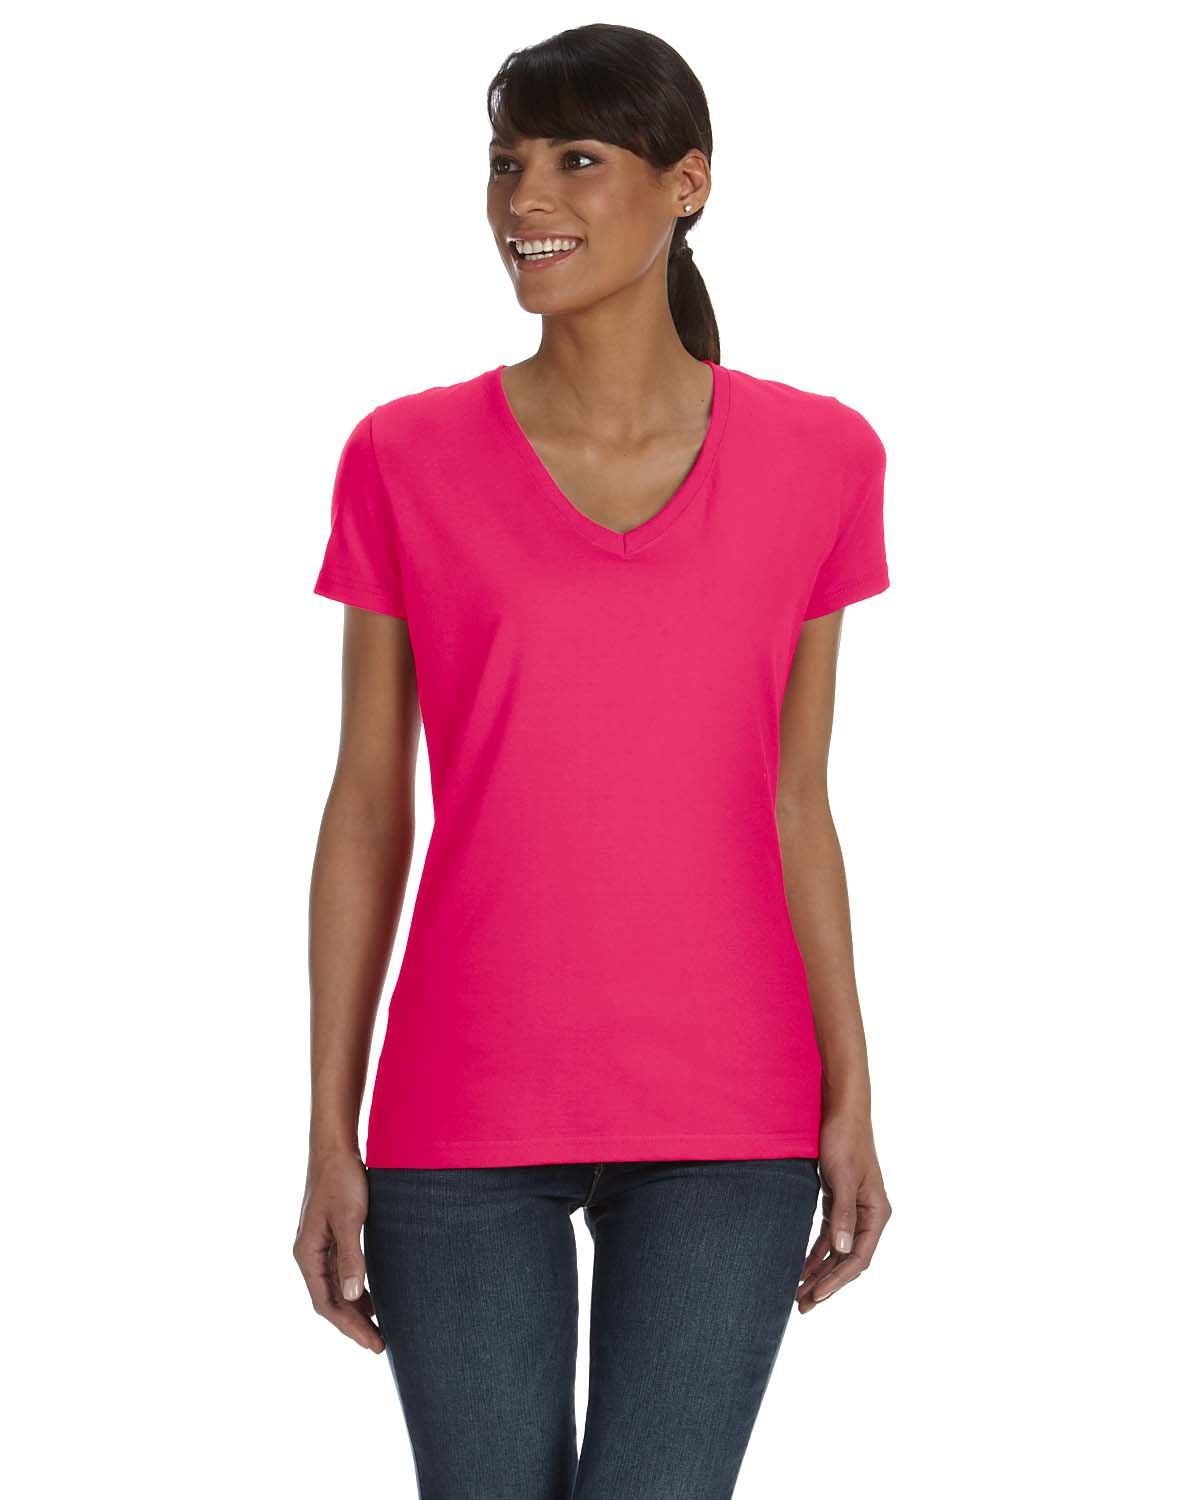 Fruit of the Loom L39VR - Ladies' Heavy Cotton HD V-Neck T-Shirt